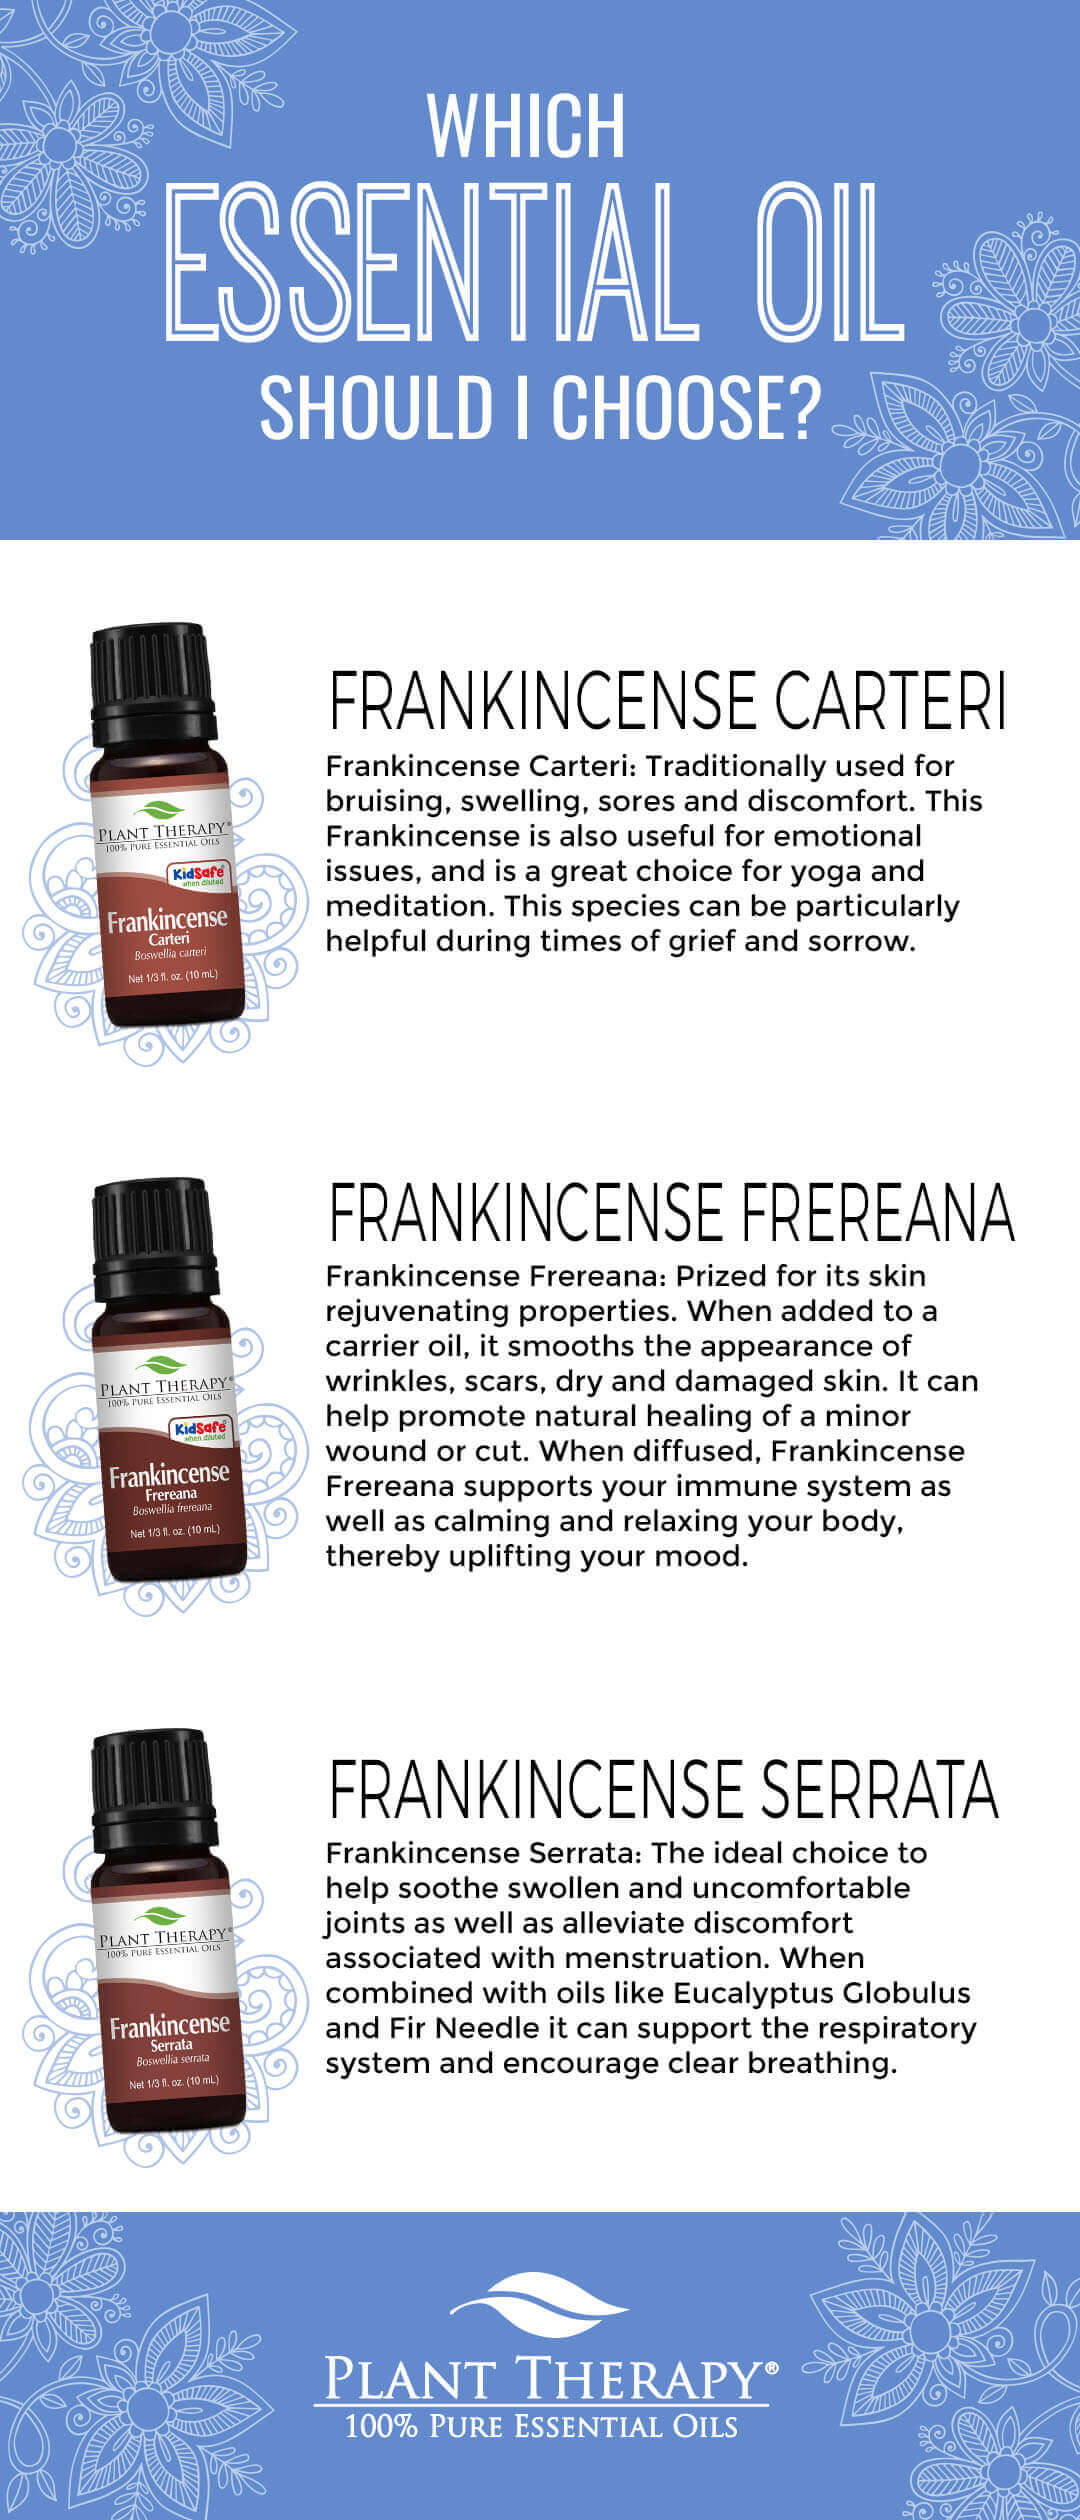 Which Frankincense Essential Oil Should I Choose? Plant therapy